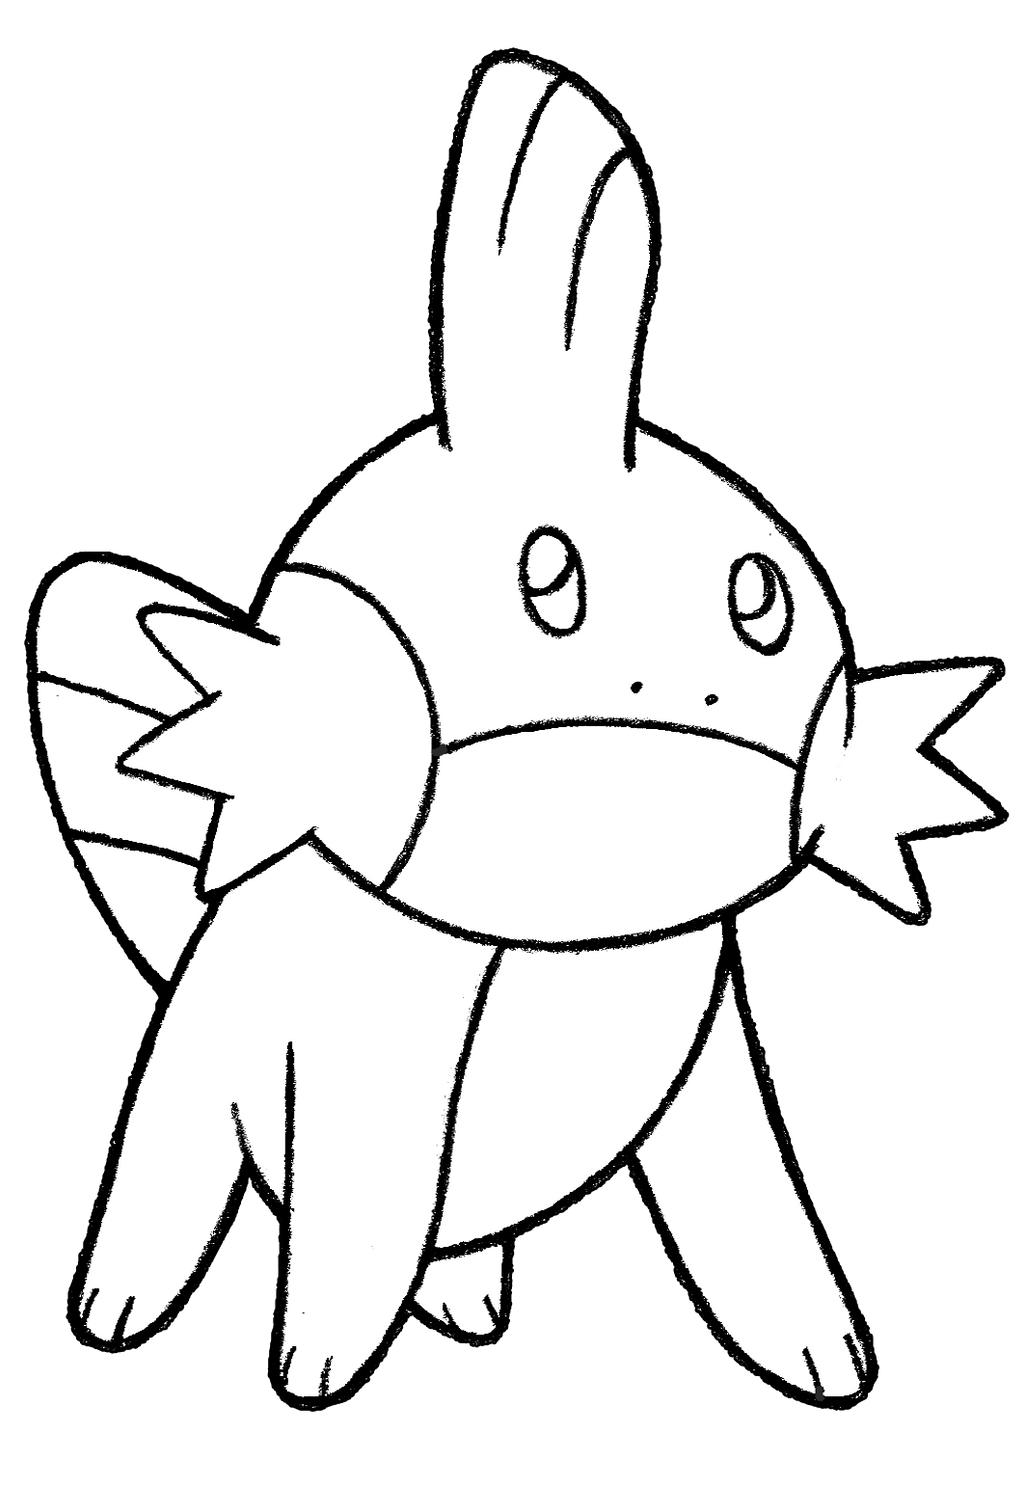 mudkip evolution coloring pages - photo#22